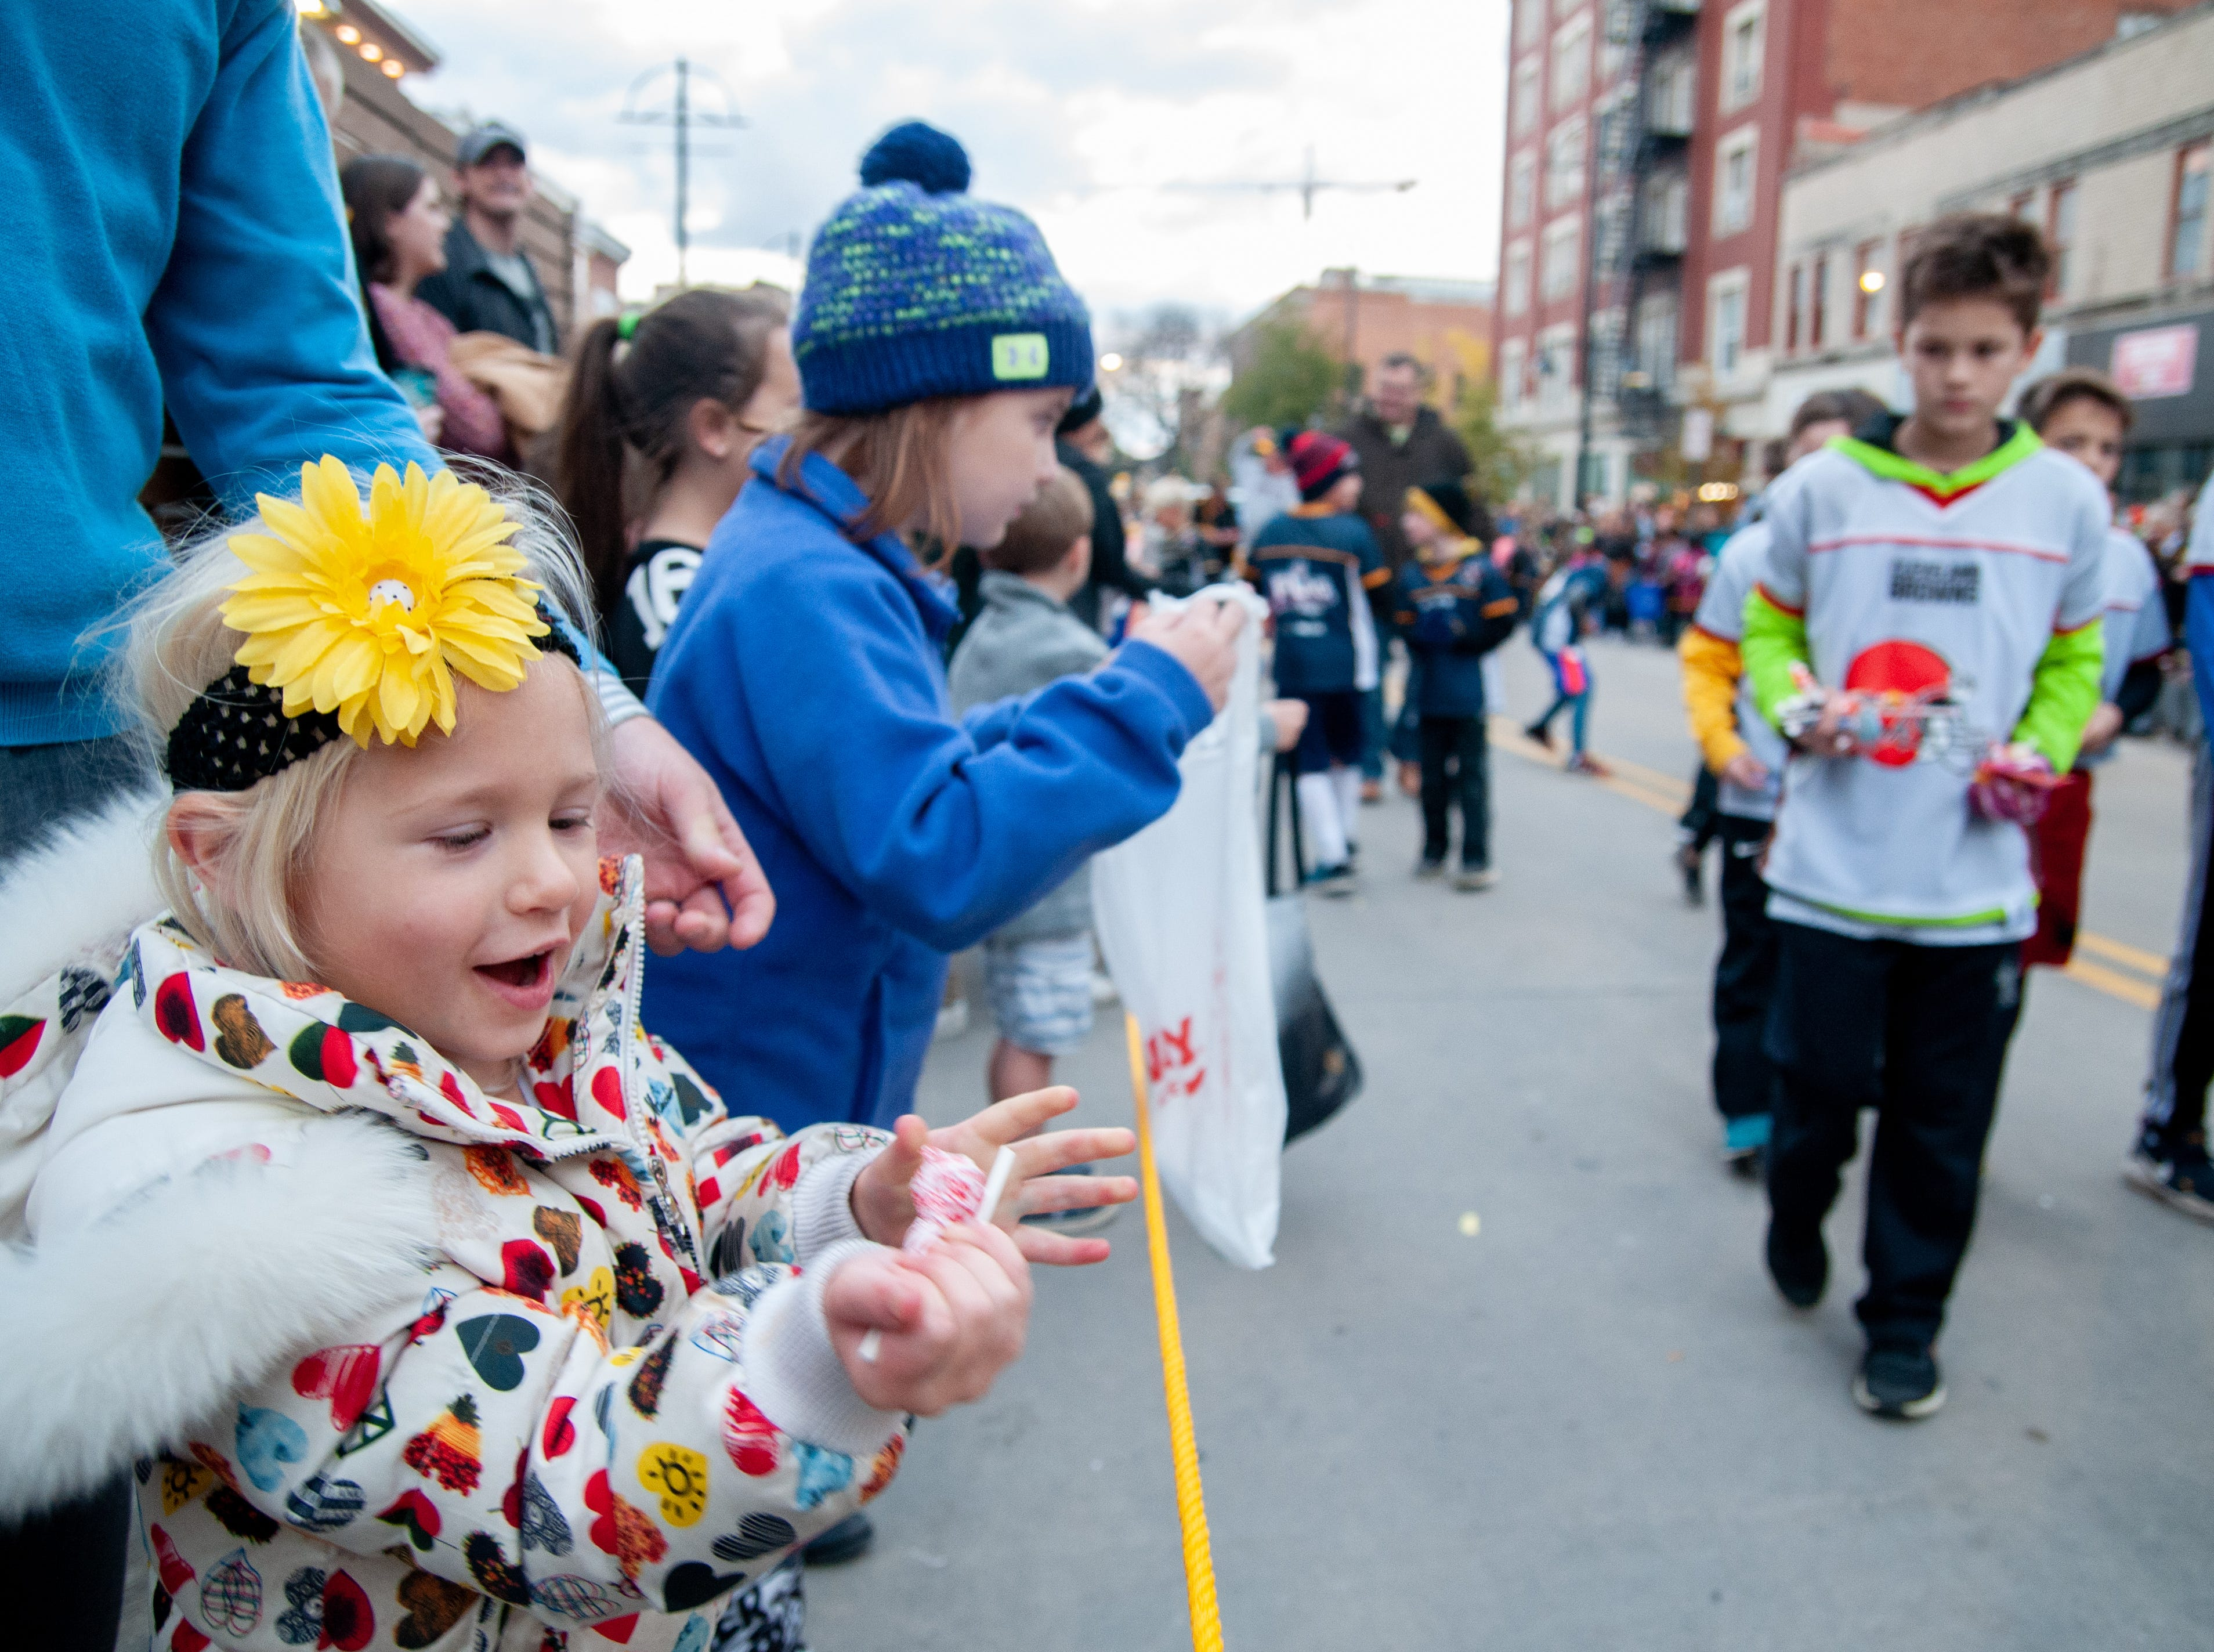 Audrea Beelner, 3, receives candy during the 2018 Homecoming parade, Friday, Oct. 19, 2018, in Iowa City.